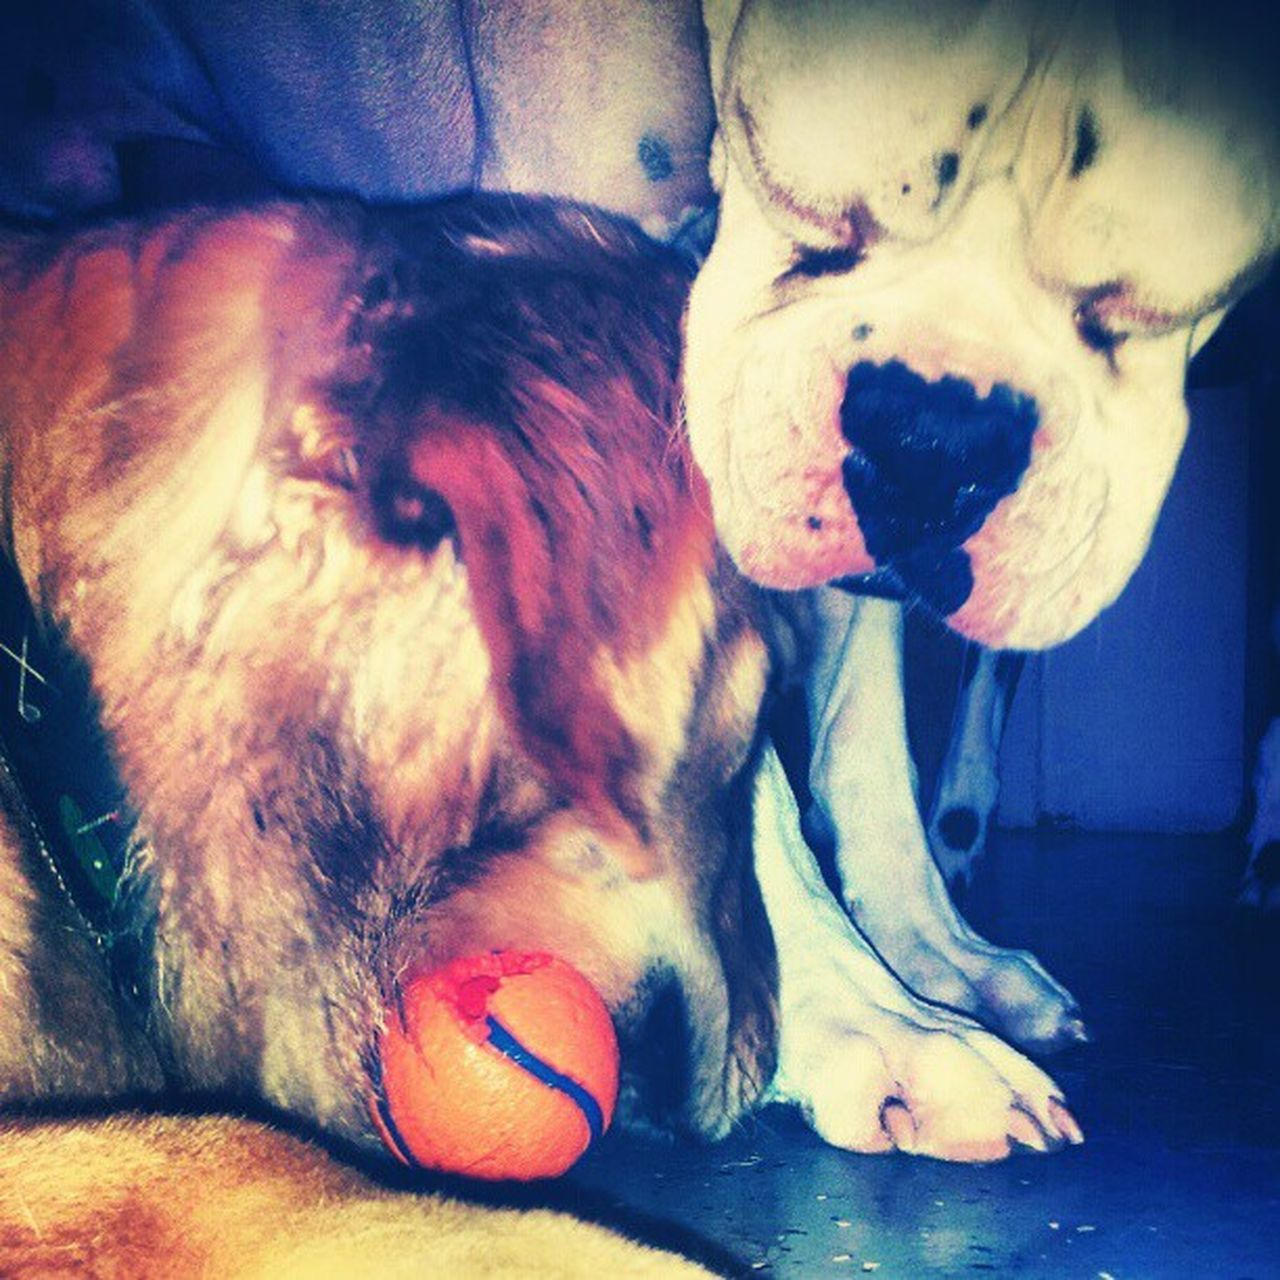 dog, pets, one animal, animal themes, domestic animals, mammal, indoors, playing, no people, close-up, day